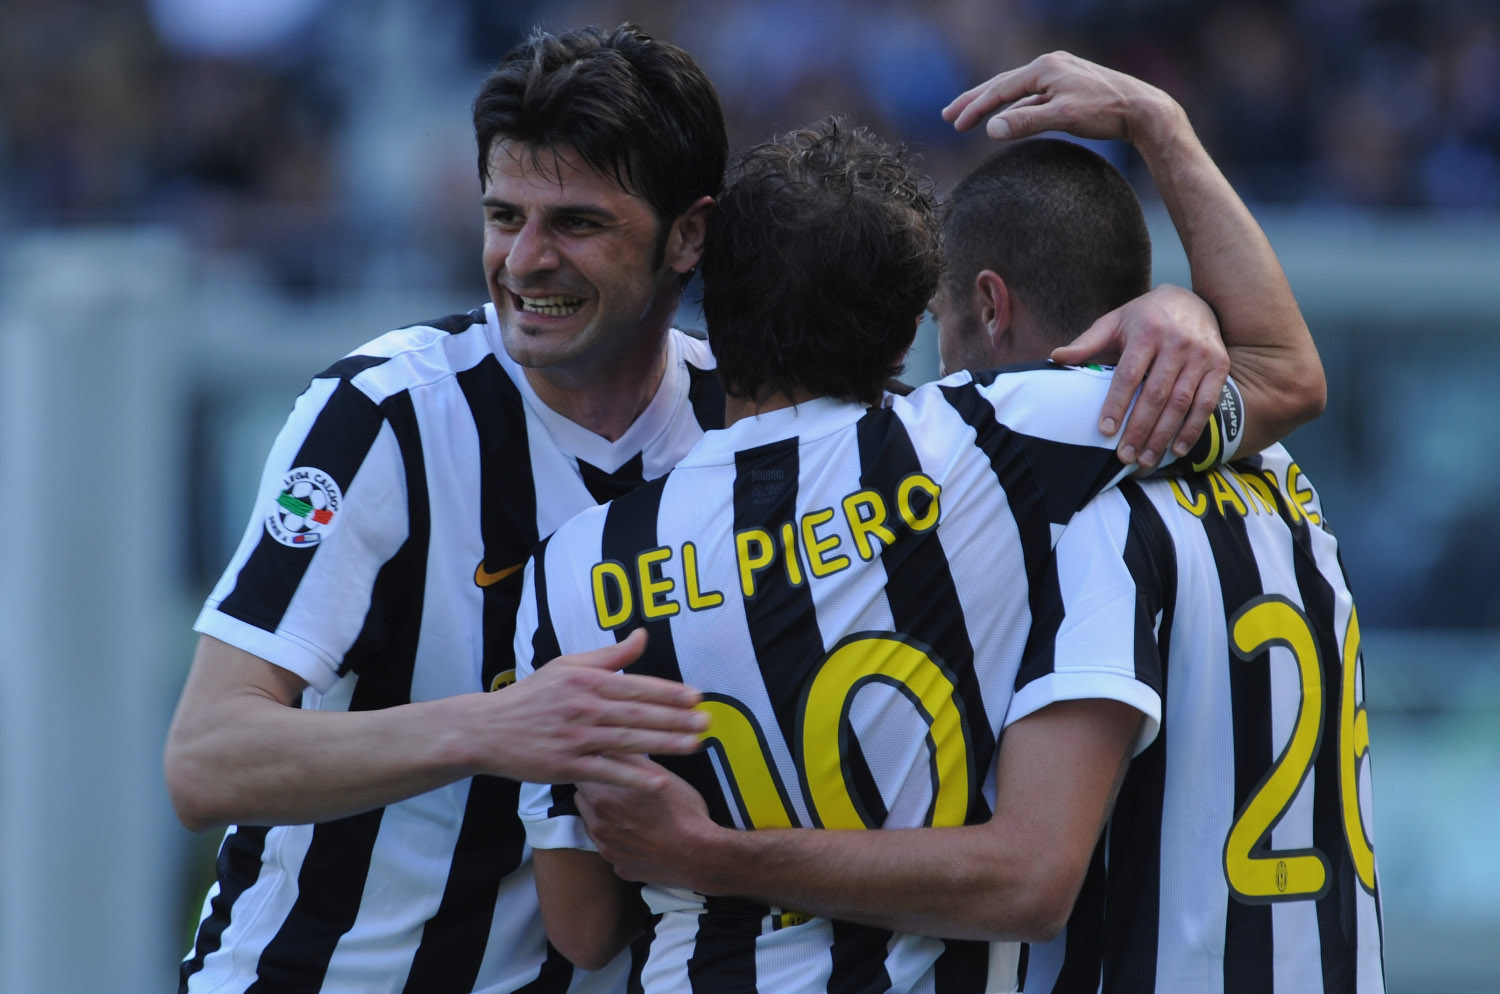 TURIN, ITALY - APRIL 25:  Vincenzo Iaquinta (L) of Juventus FC celebrates his goal with  Alessandro Del Piero (C) and Antonio Candreva during the Serie A match between Juventus FC and AS Bari at Stadio Olimpico on April 25, 2010 in Turin, Italy.  (Photo by Valerio Pennicino/Getty Images)